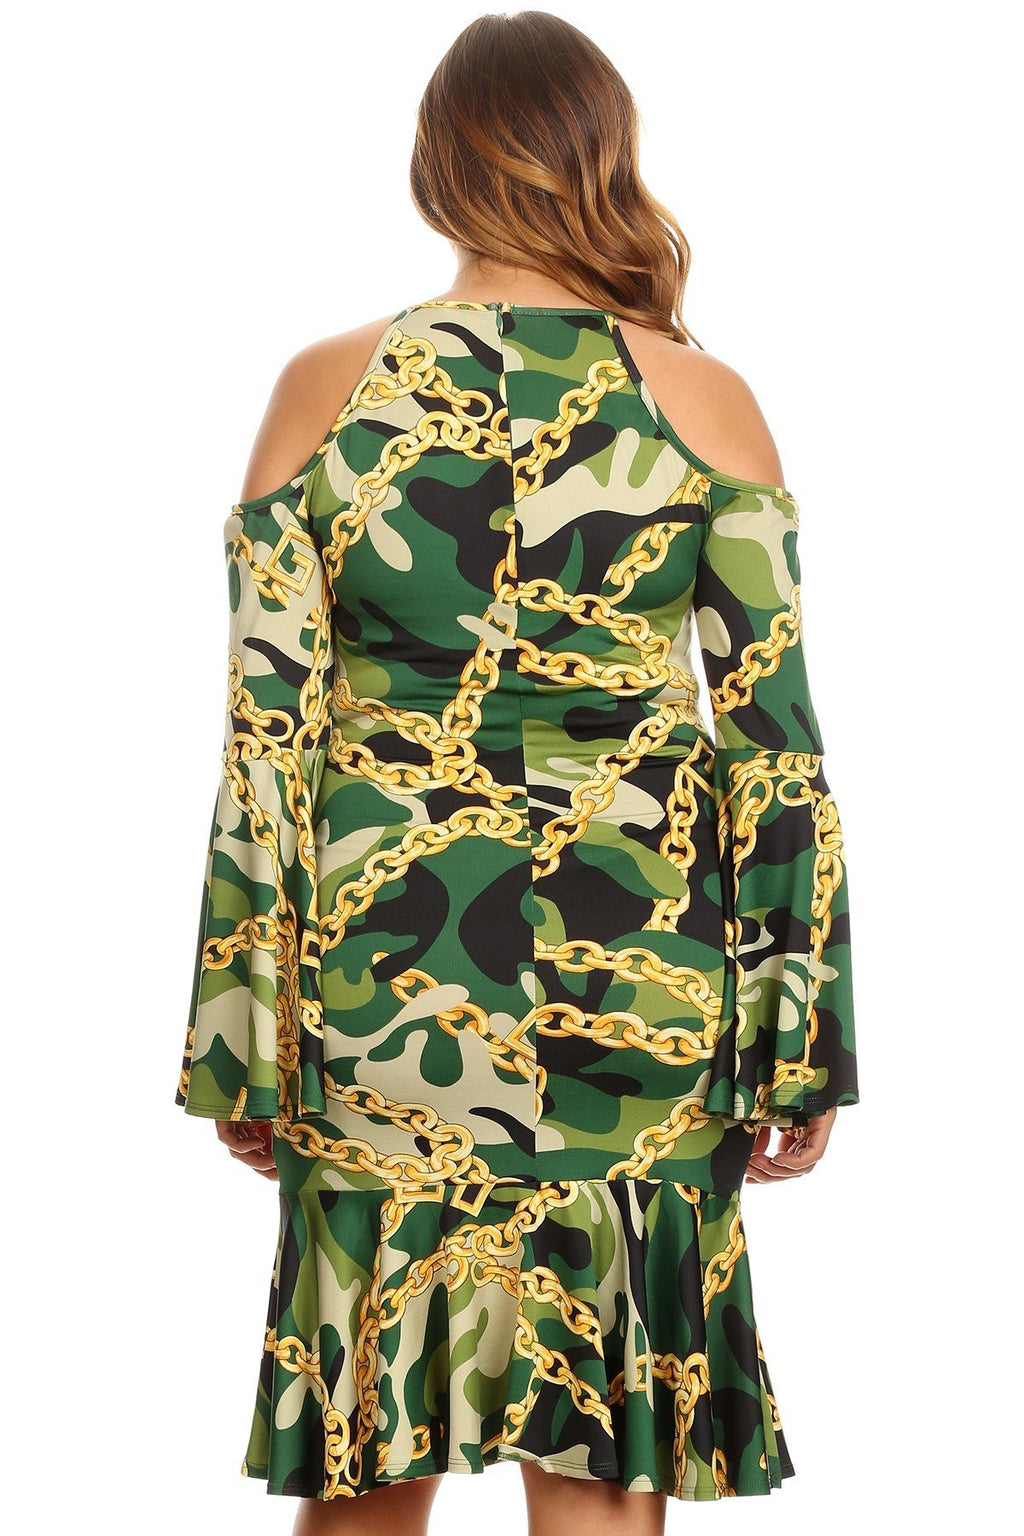 Plus Size Bell Sleeves Cold Shoulders Camo Printed Dress